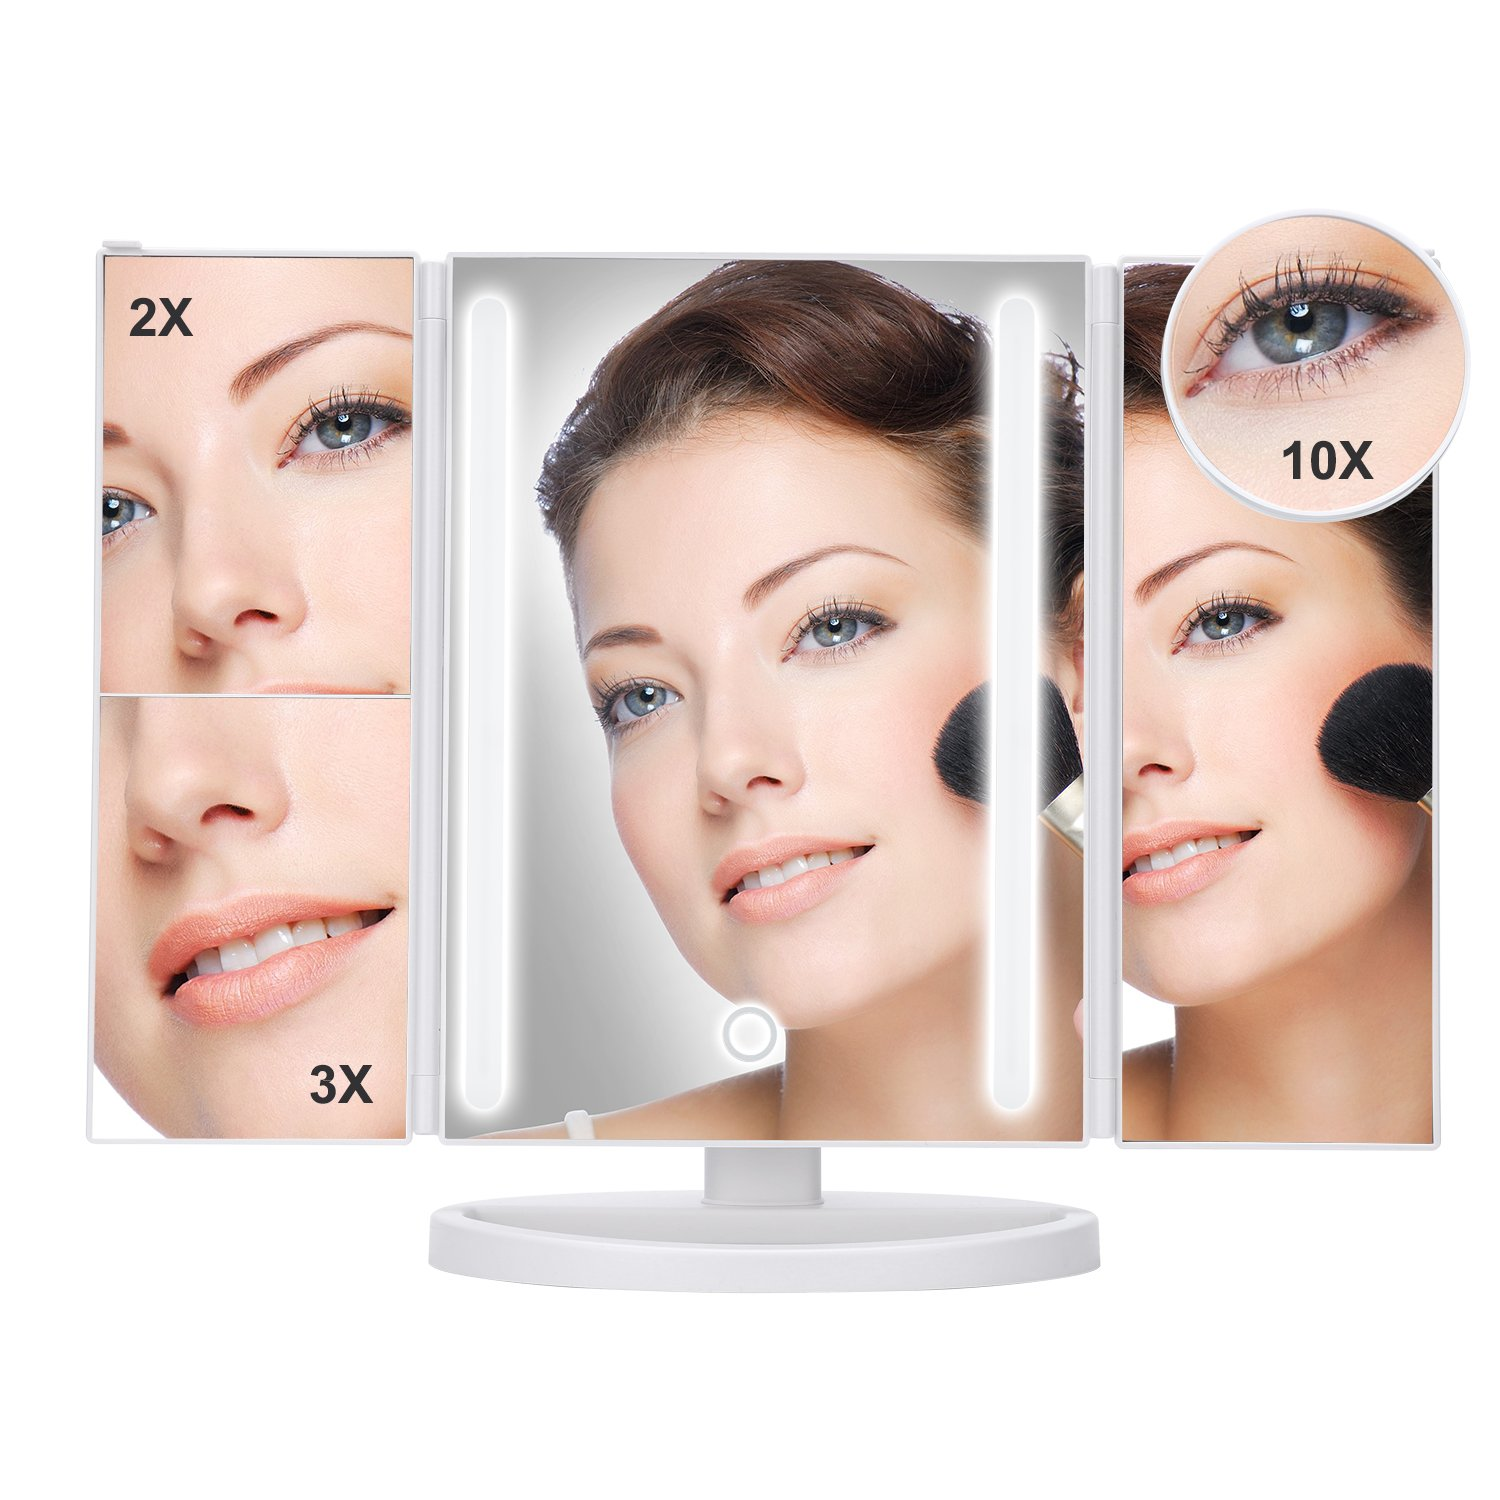 Lighted Makeup Mirror yiiyaa magnifying mirror 24 LED Trifold Illuminated Vanity Mirror Touch Screen 180 Degree Rotation Dimmable Table Countertop Cosmetic Batteries and USB Charging (24LED-White)